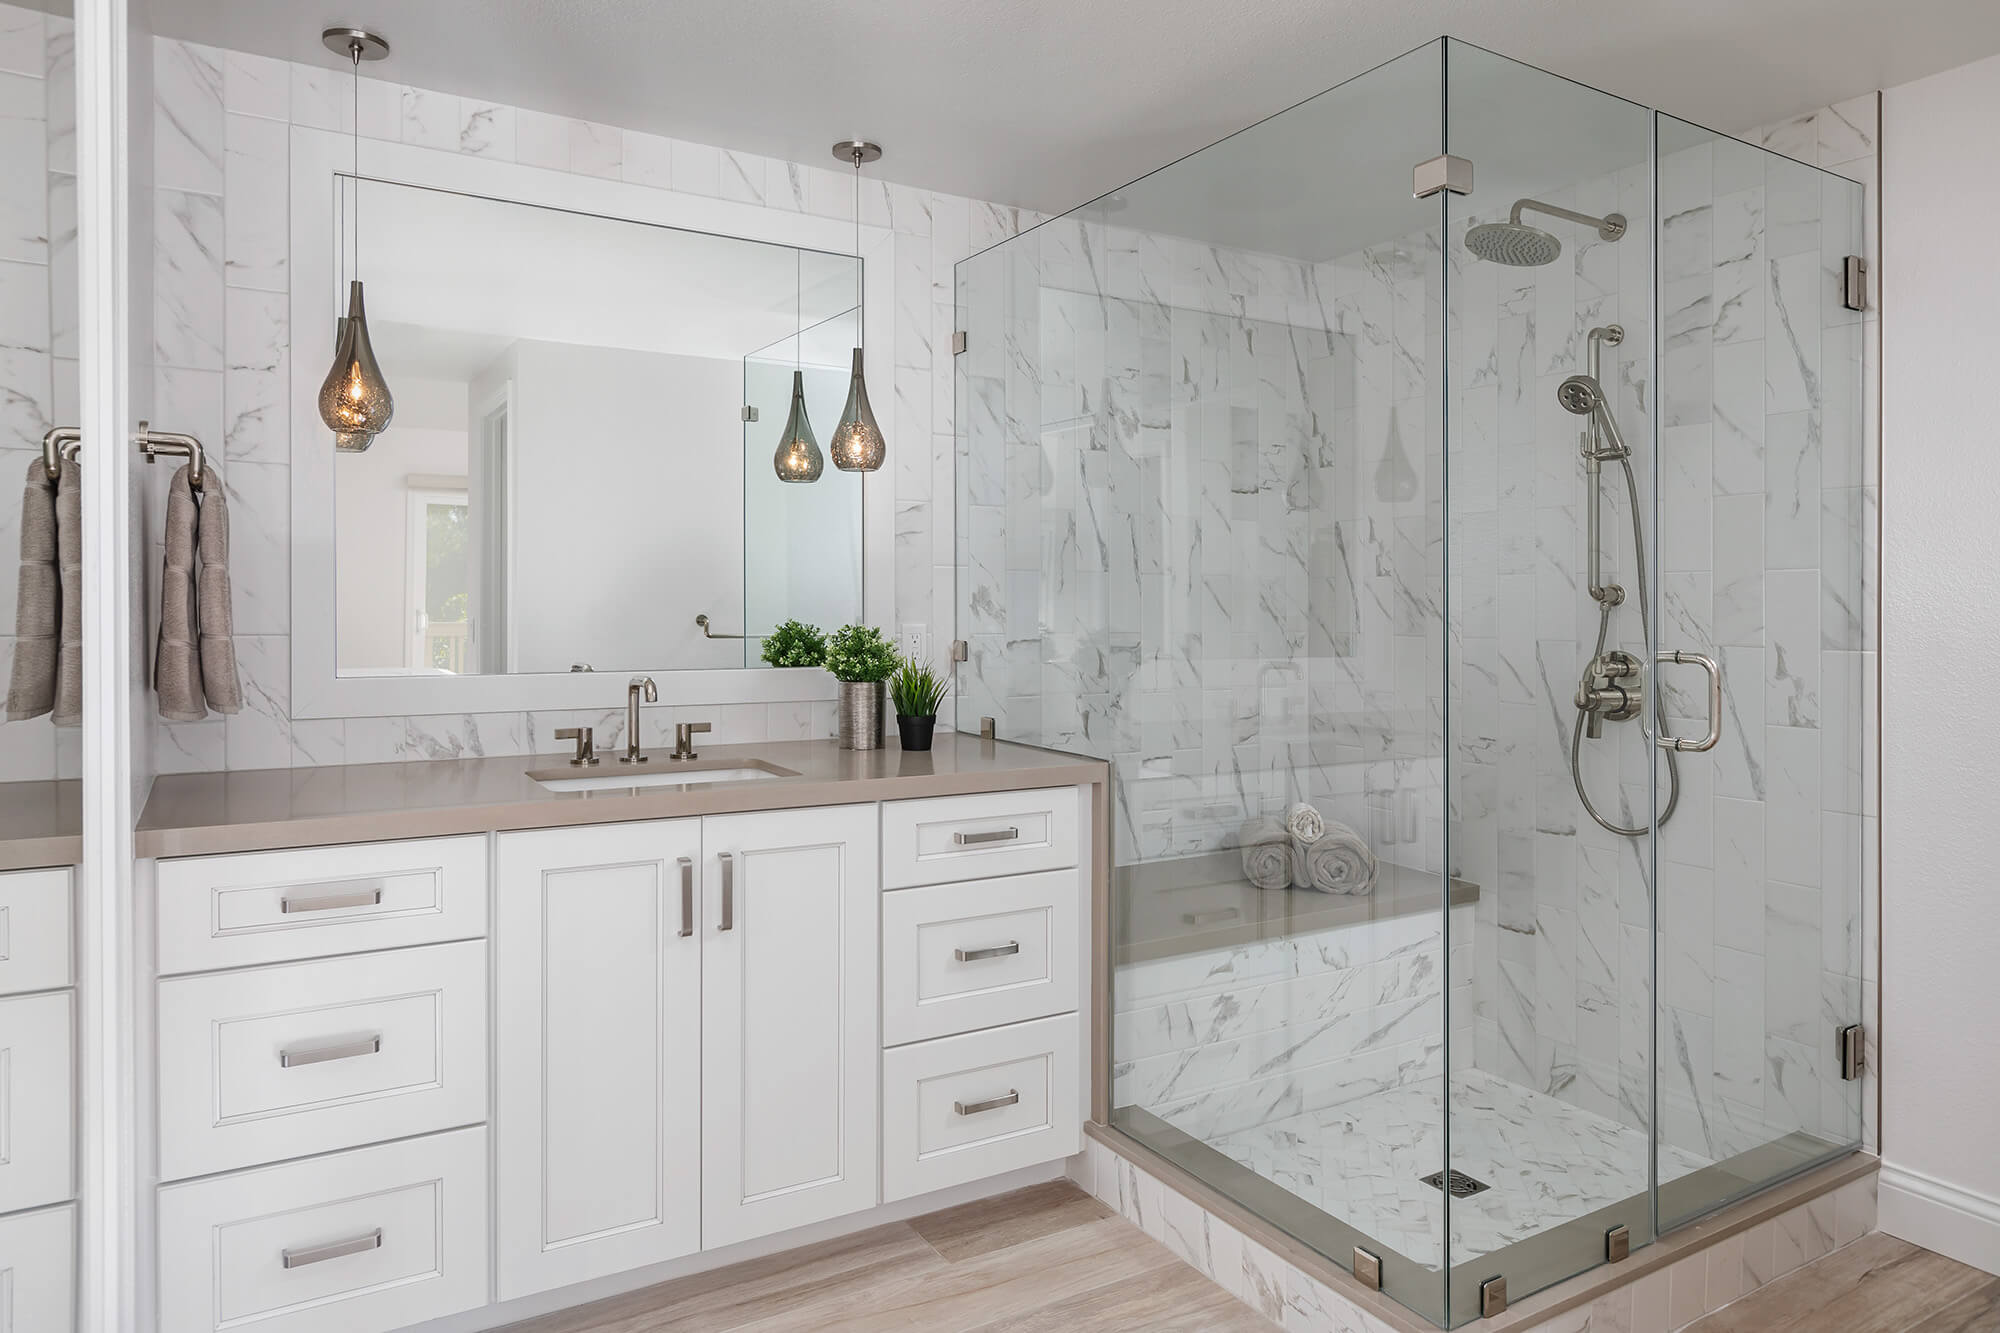 7 Key Reasons For A Bathroom Remodel Sea Pointe Construction